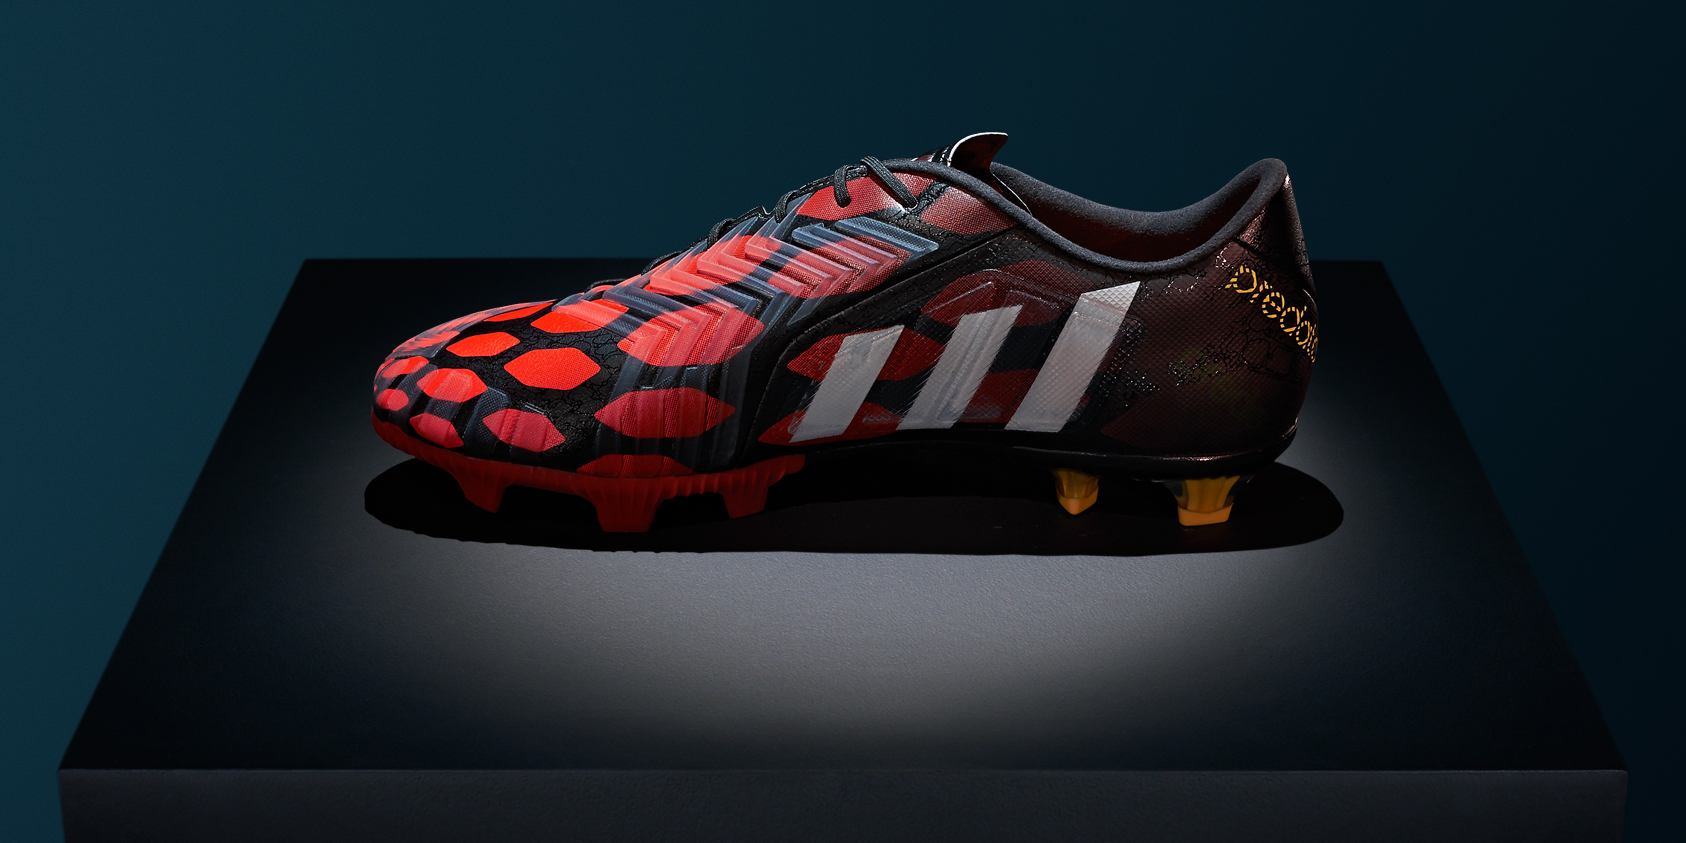 chaussure de foot adidas nouvelle collection,chaussures